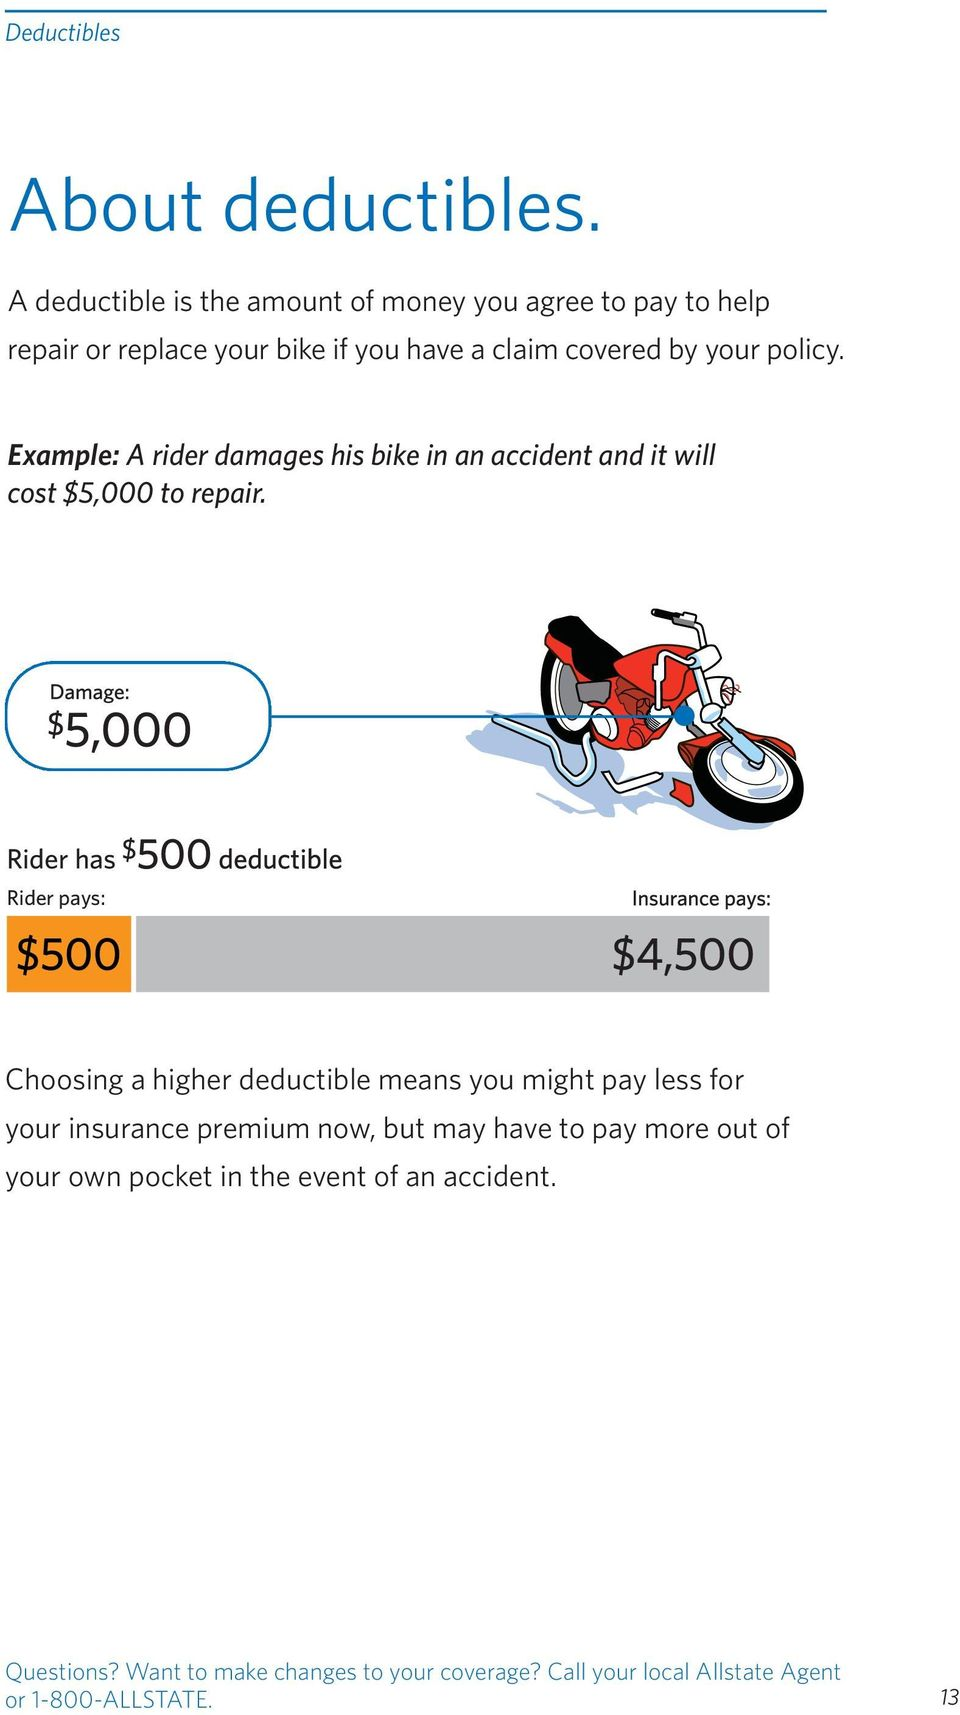 Example: A rider damages his bike in an accident and it will cost $5,000 to repair.